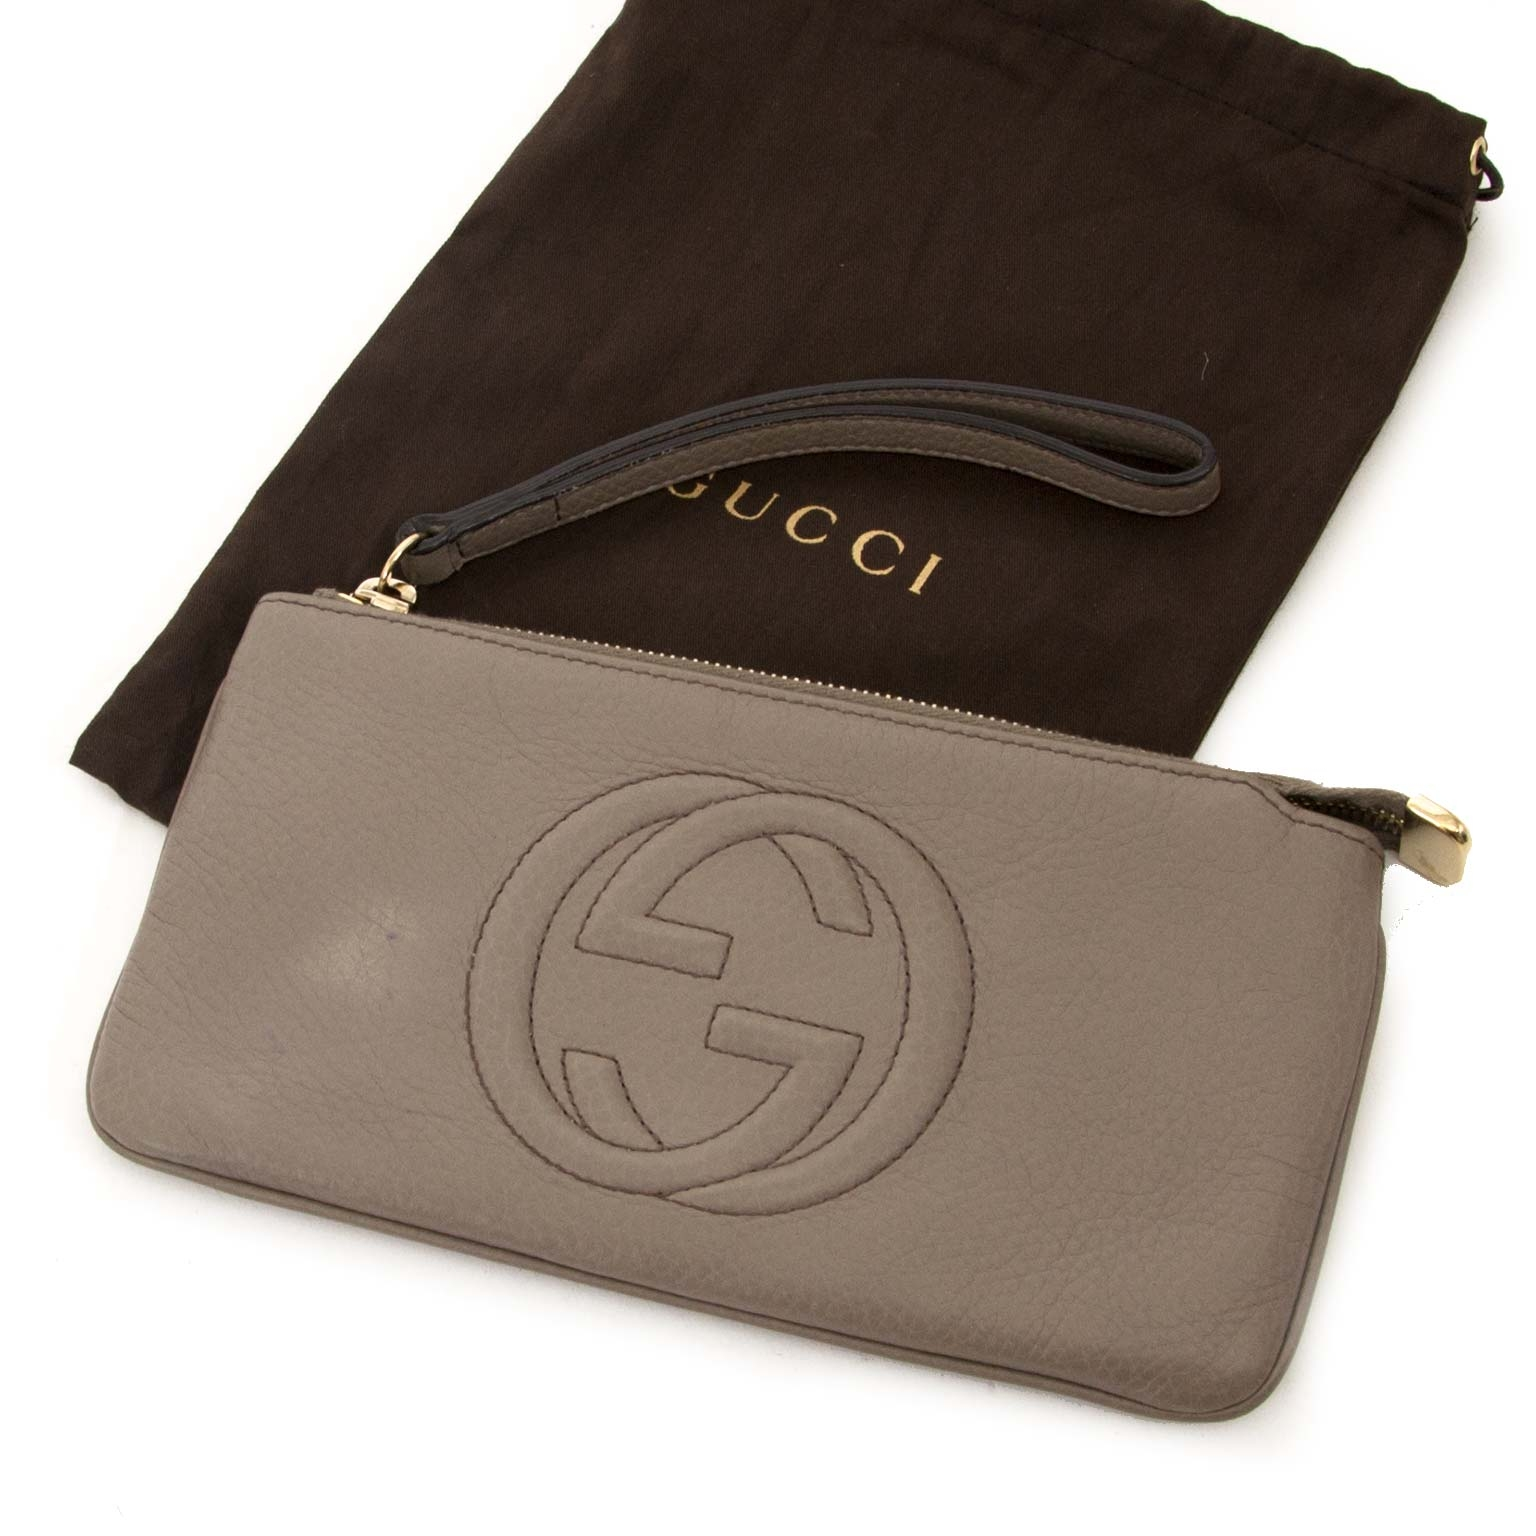 gucci grey leather soho wrist clutch wallet now for sale at labellov vintage fashion webshop belgium